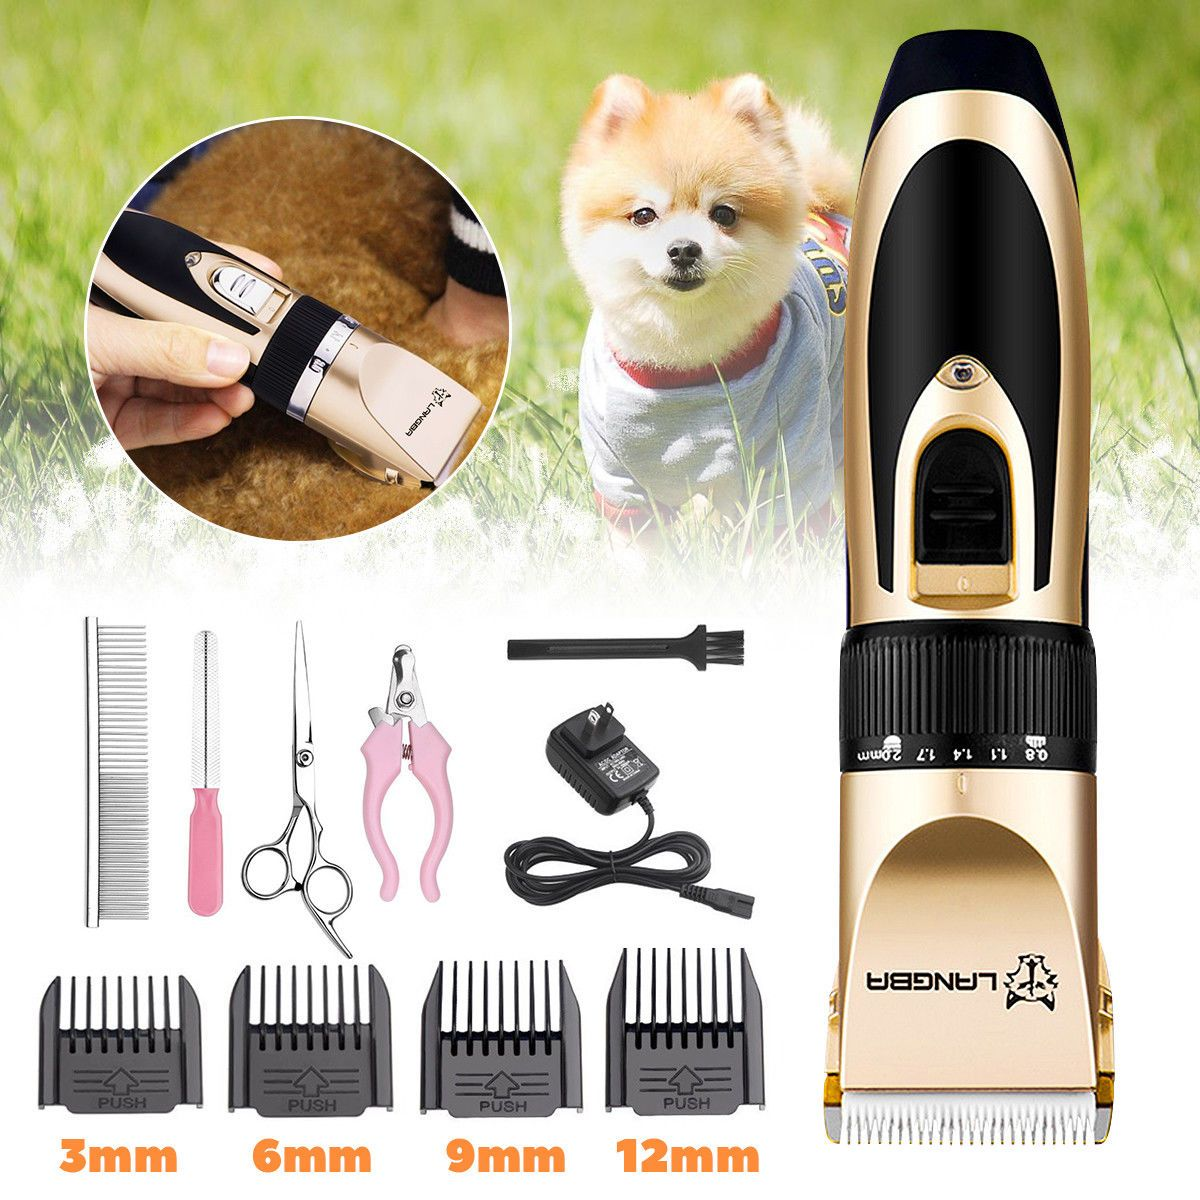 Langba Pet Grooming Clippers Ebay Home Garden Grooming Kit Dog Clippers Grooming